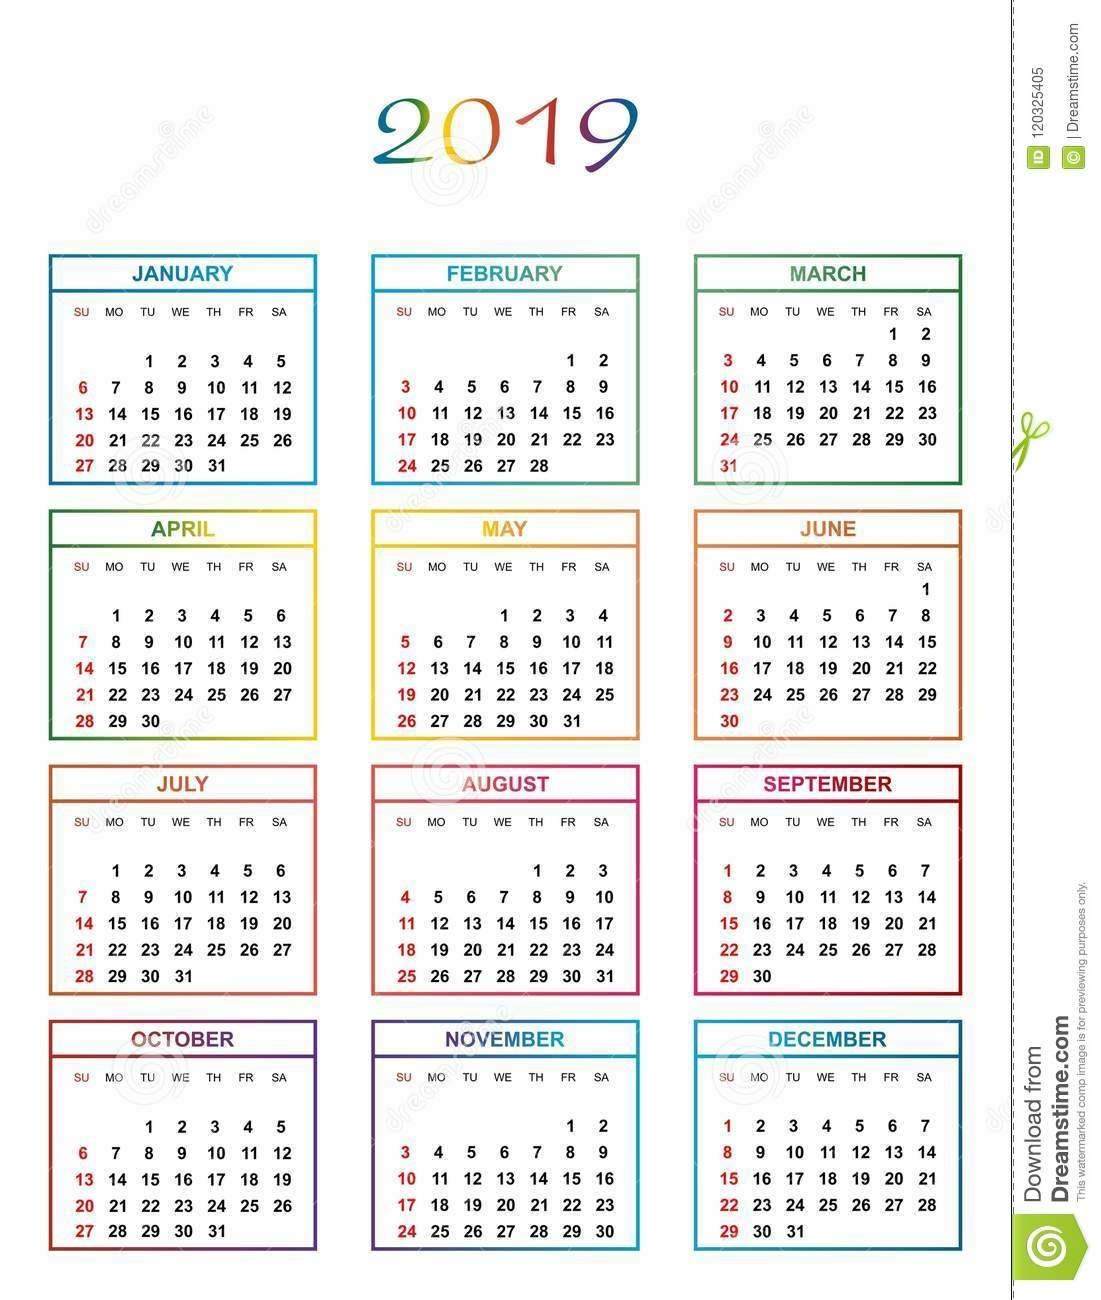 Simple Color Calendar For The Year 2019 With Name Of Day, Months In Calendar 2019 Days